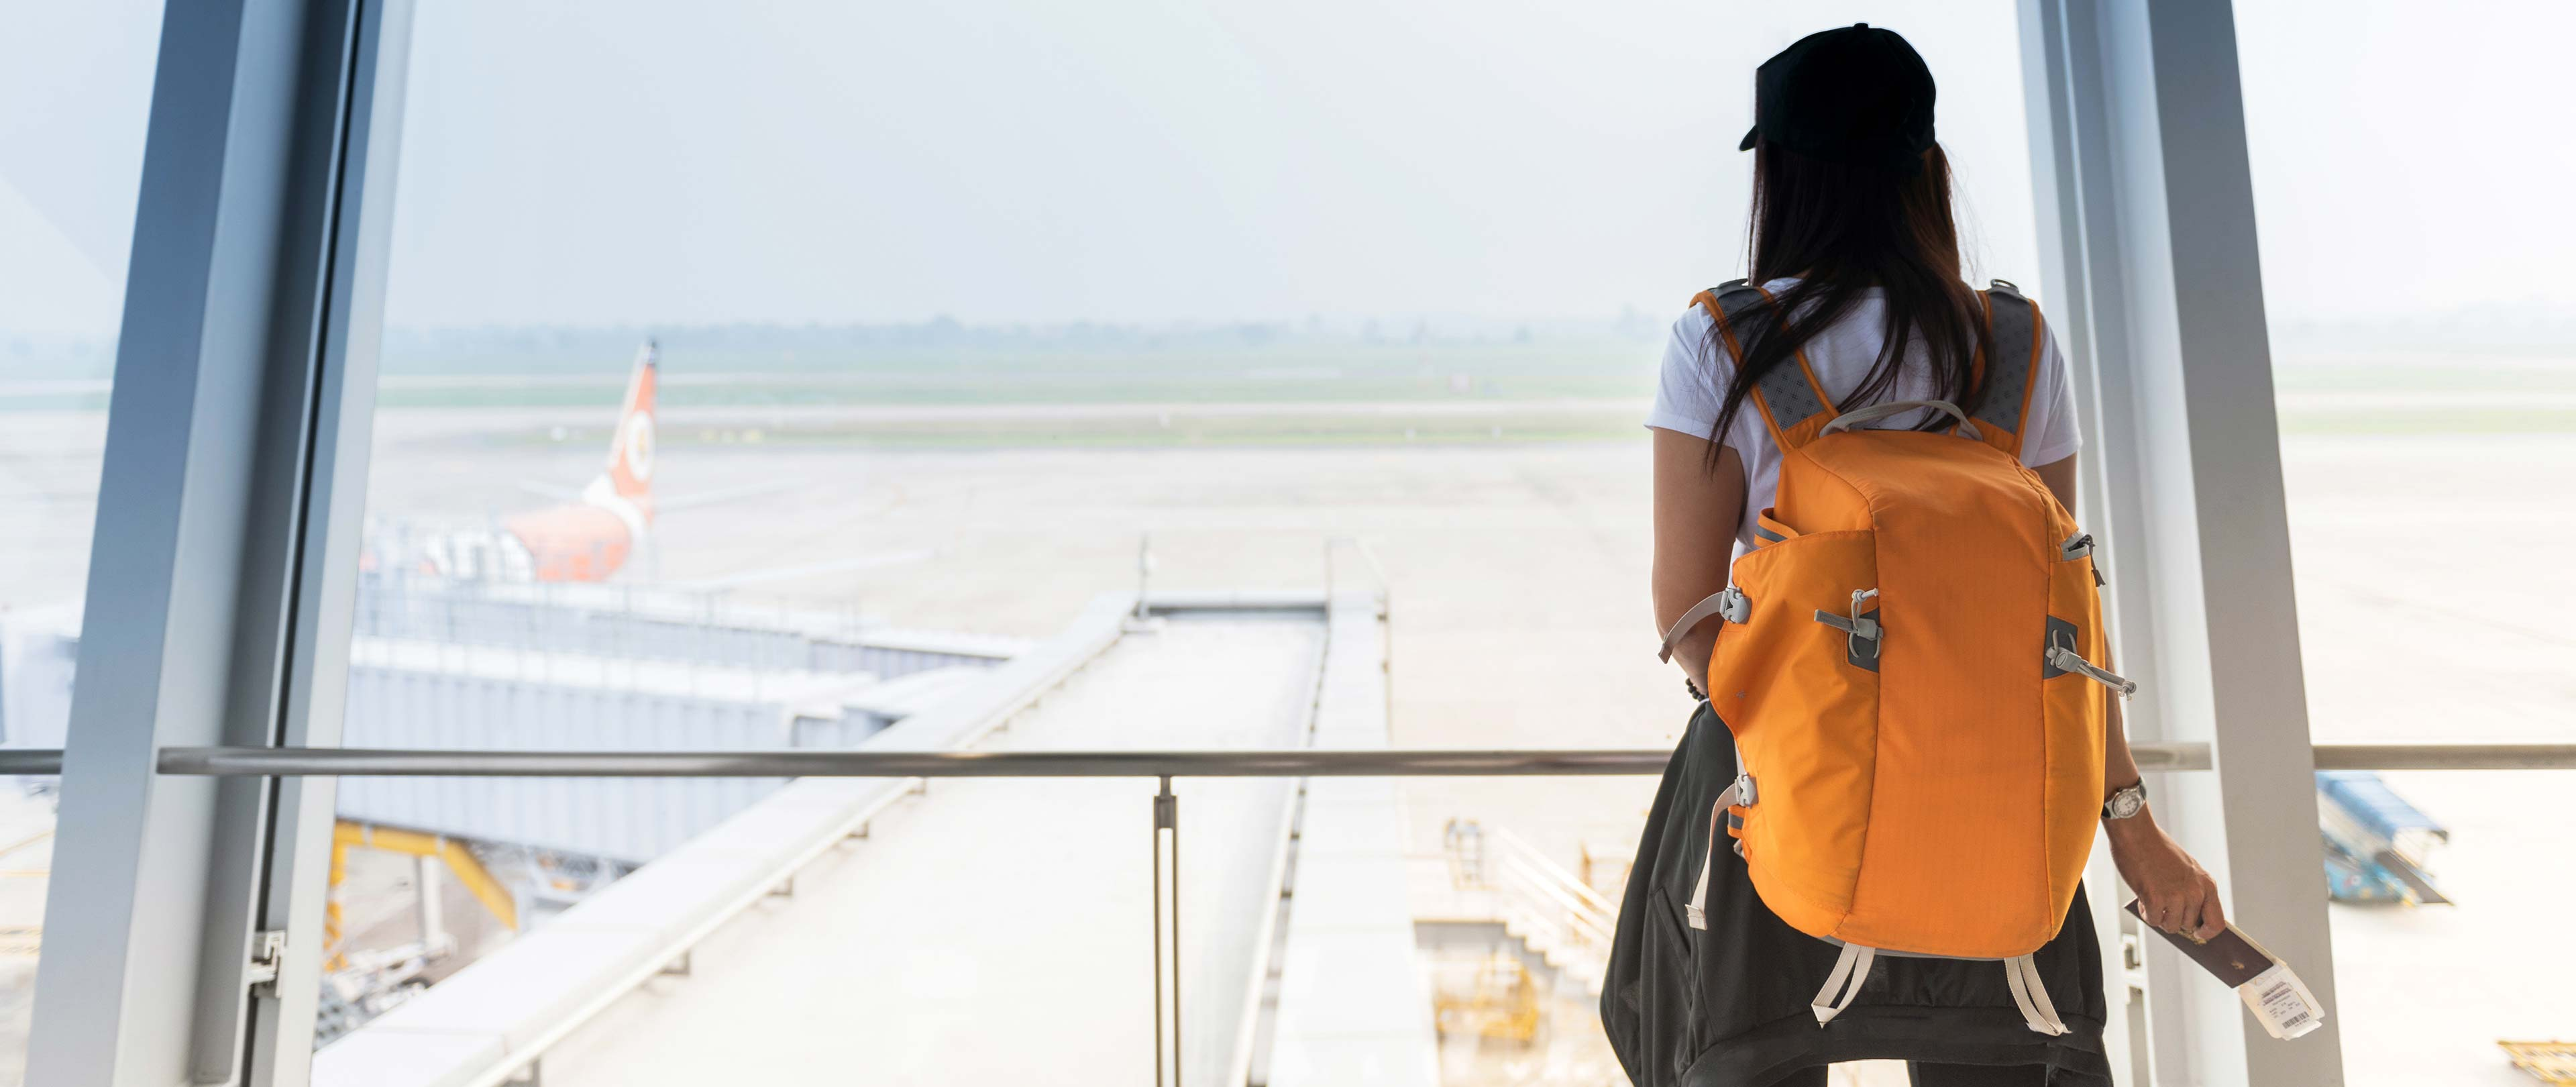 Dealing with Flight Delays and Cancellations